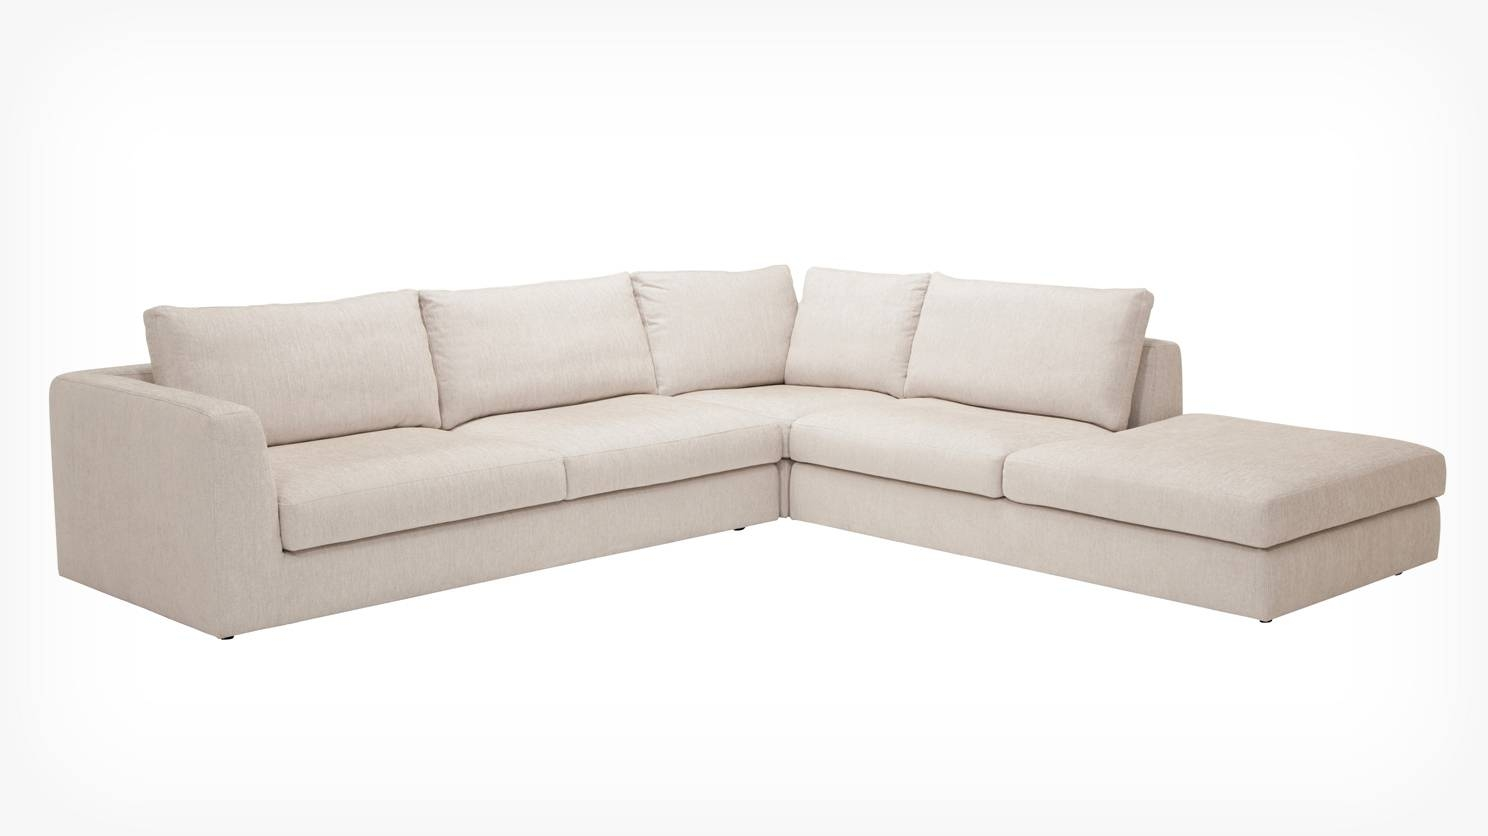 Eq3 | Cello 3 Piece Sectional Sofa With Backless Chaise – Fabric Pertaining To Backless Chaise Sofa (View 12 of 30)